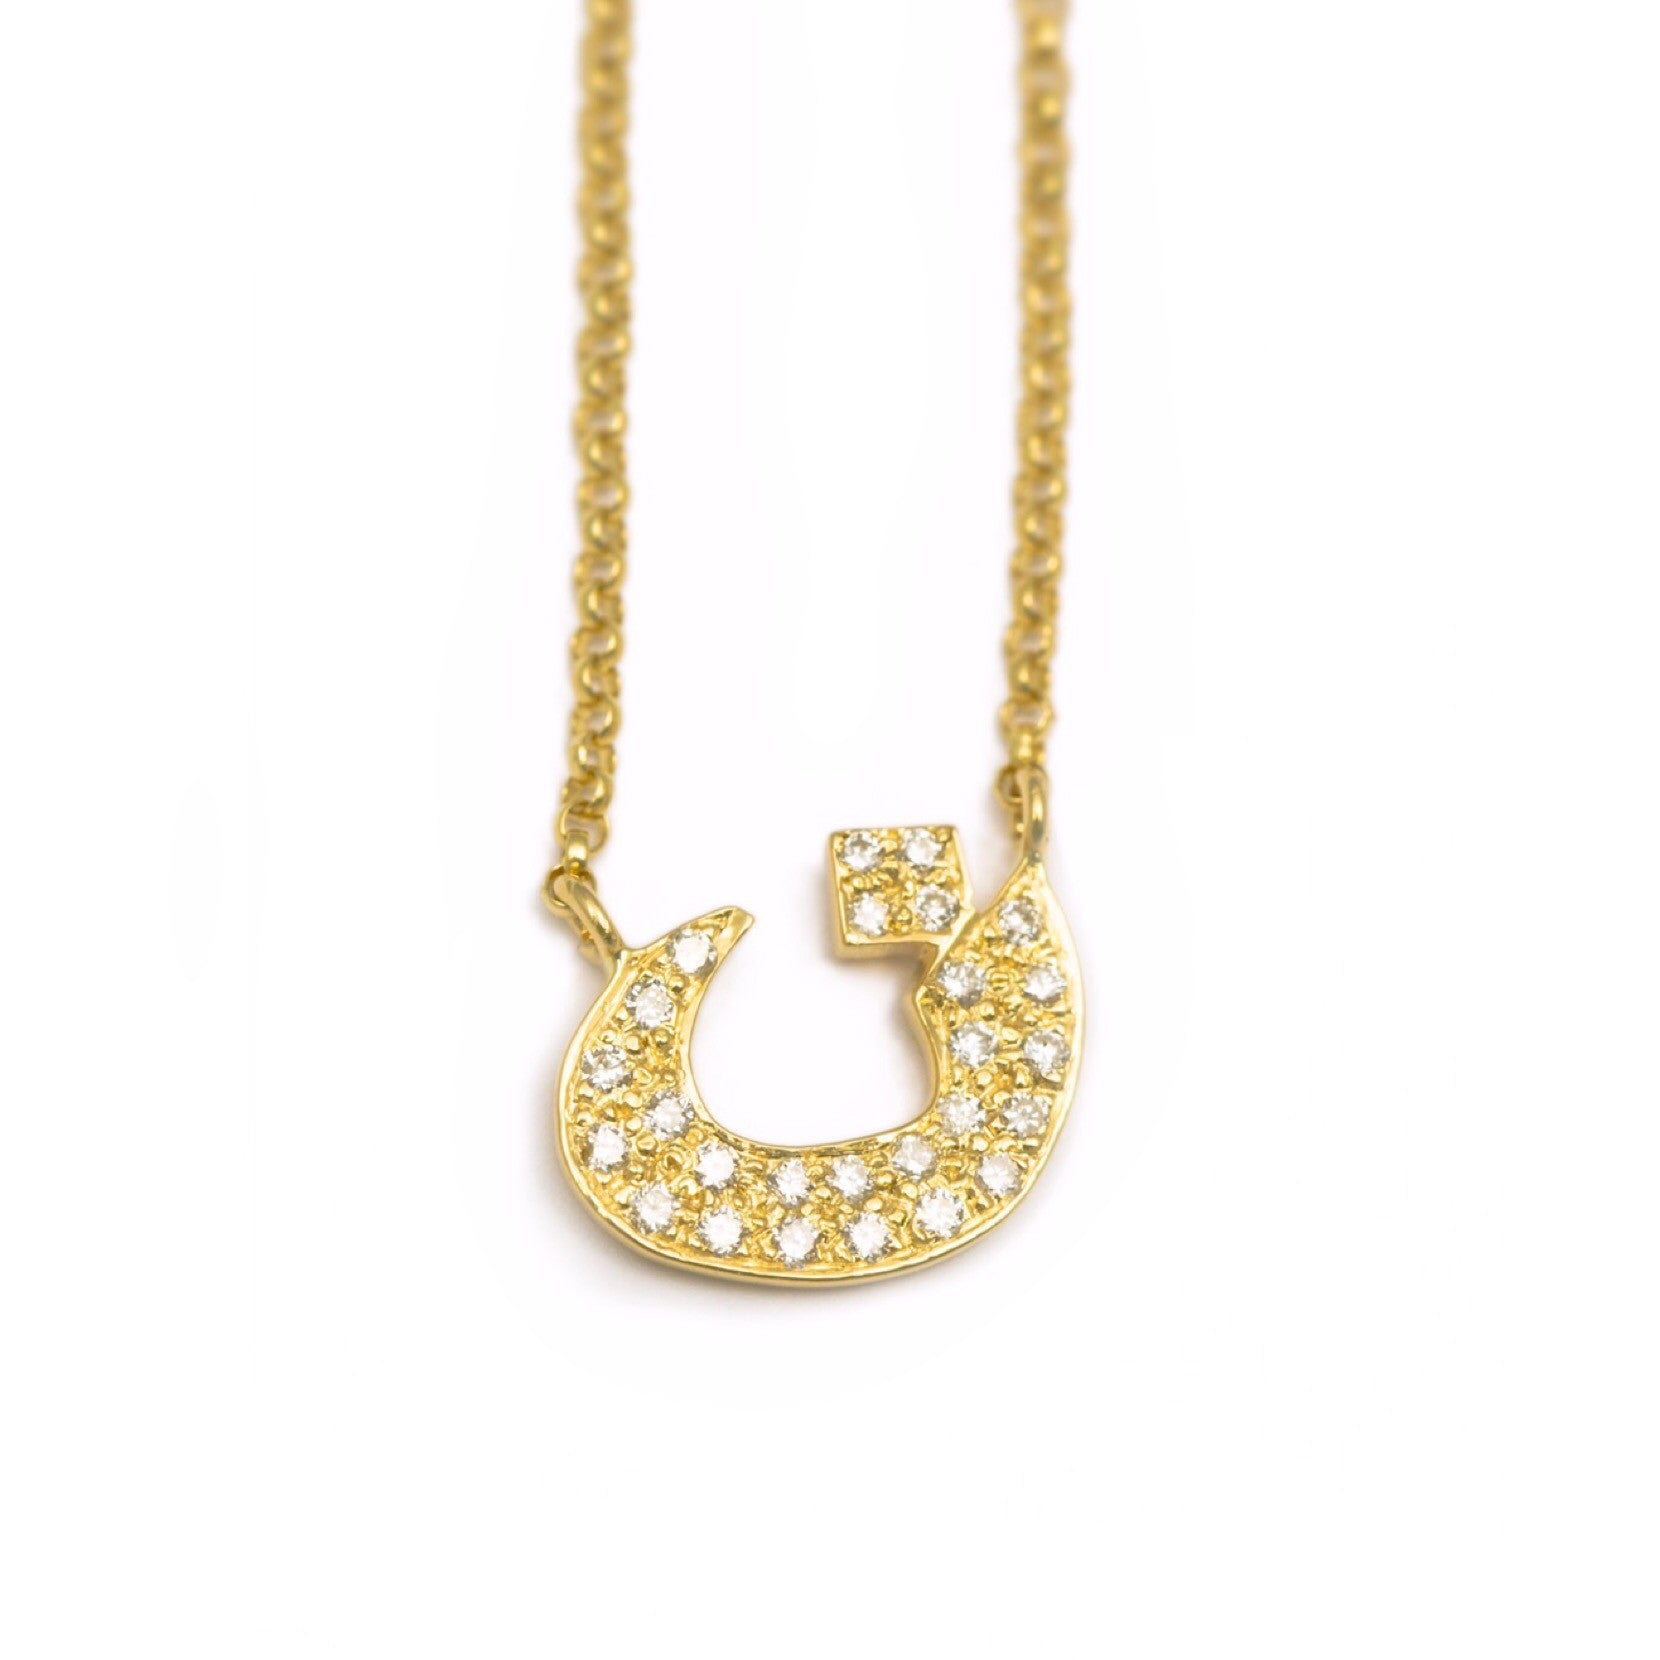 Bil Arabi Single Letter Pave Necklace